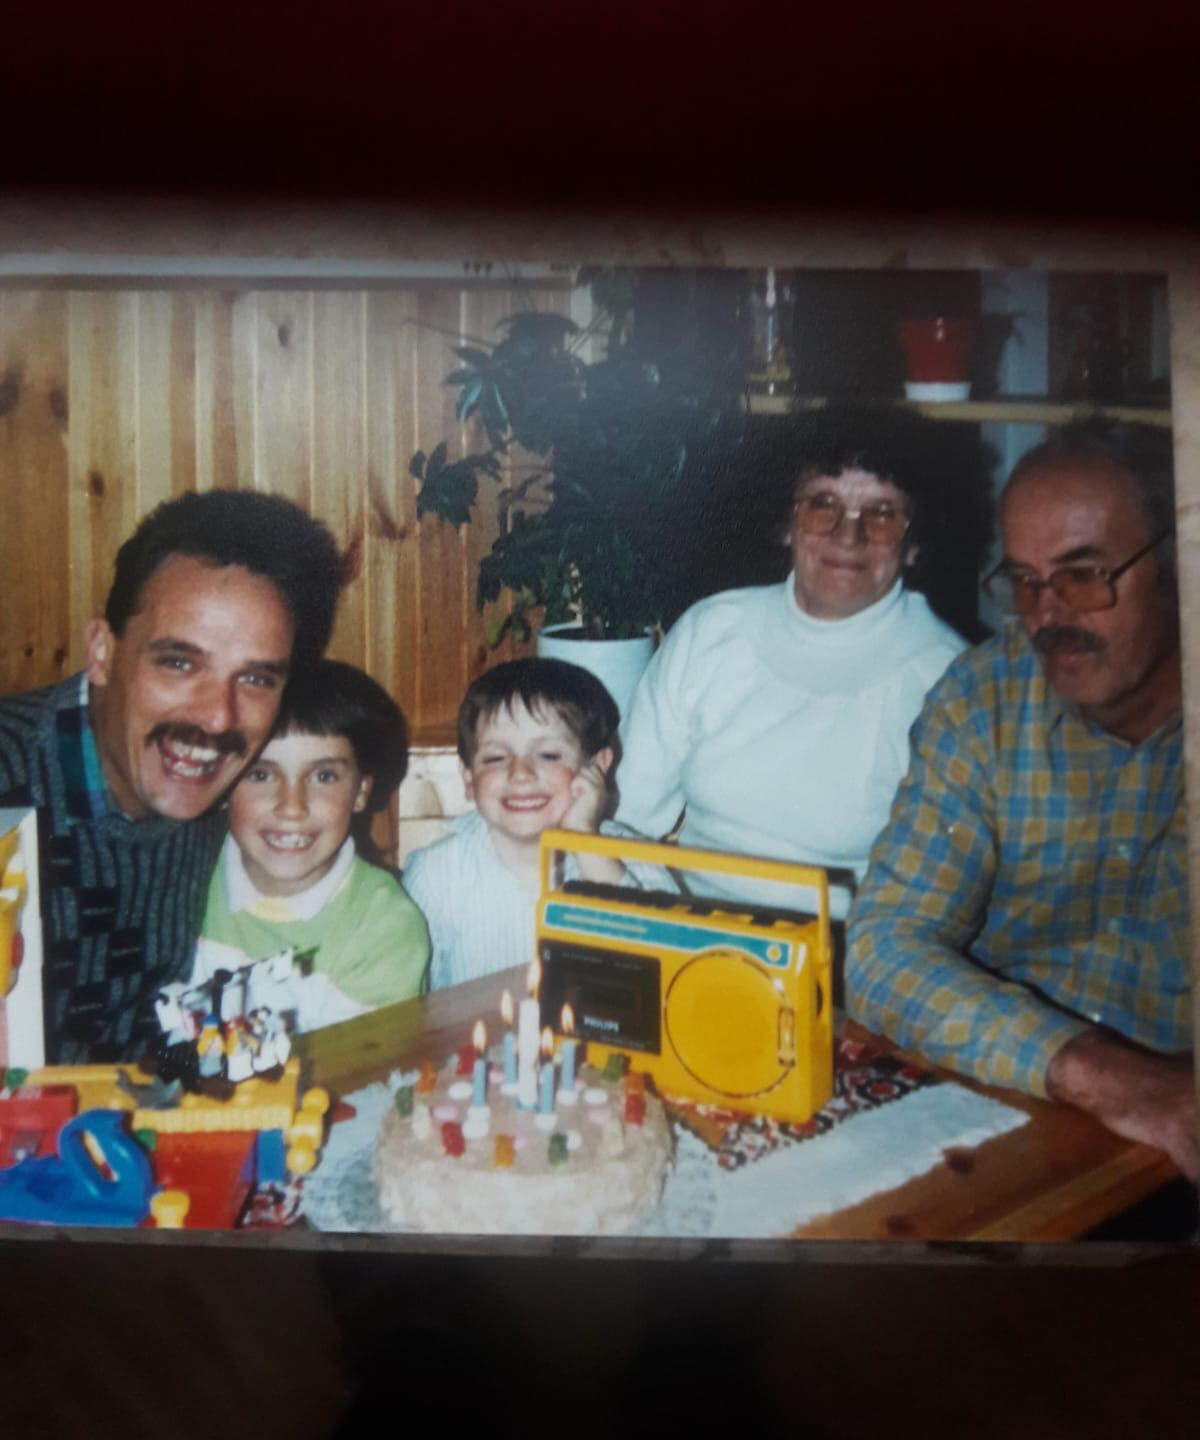 My brother's birthday in the late 80